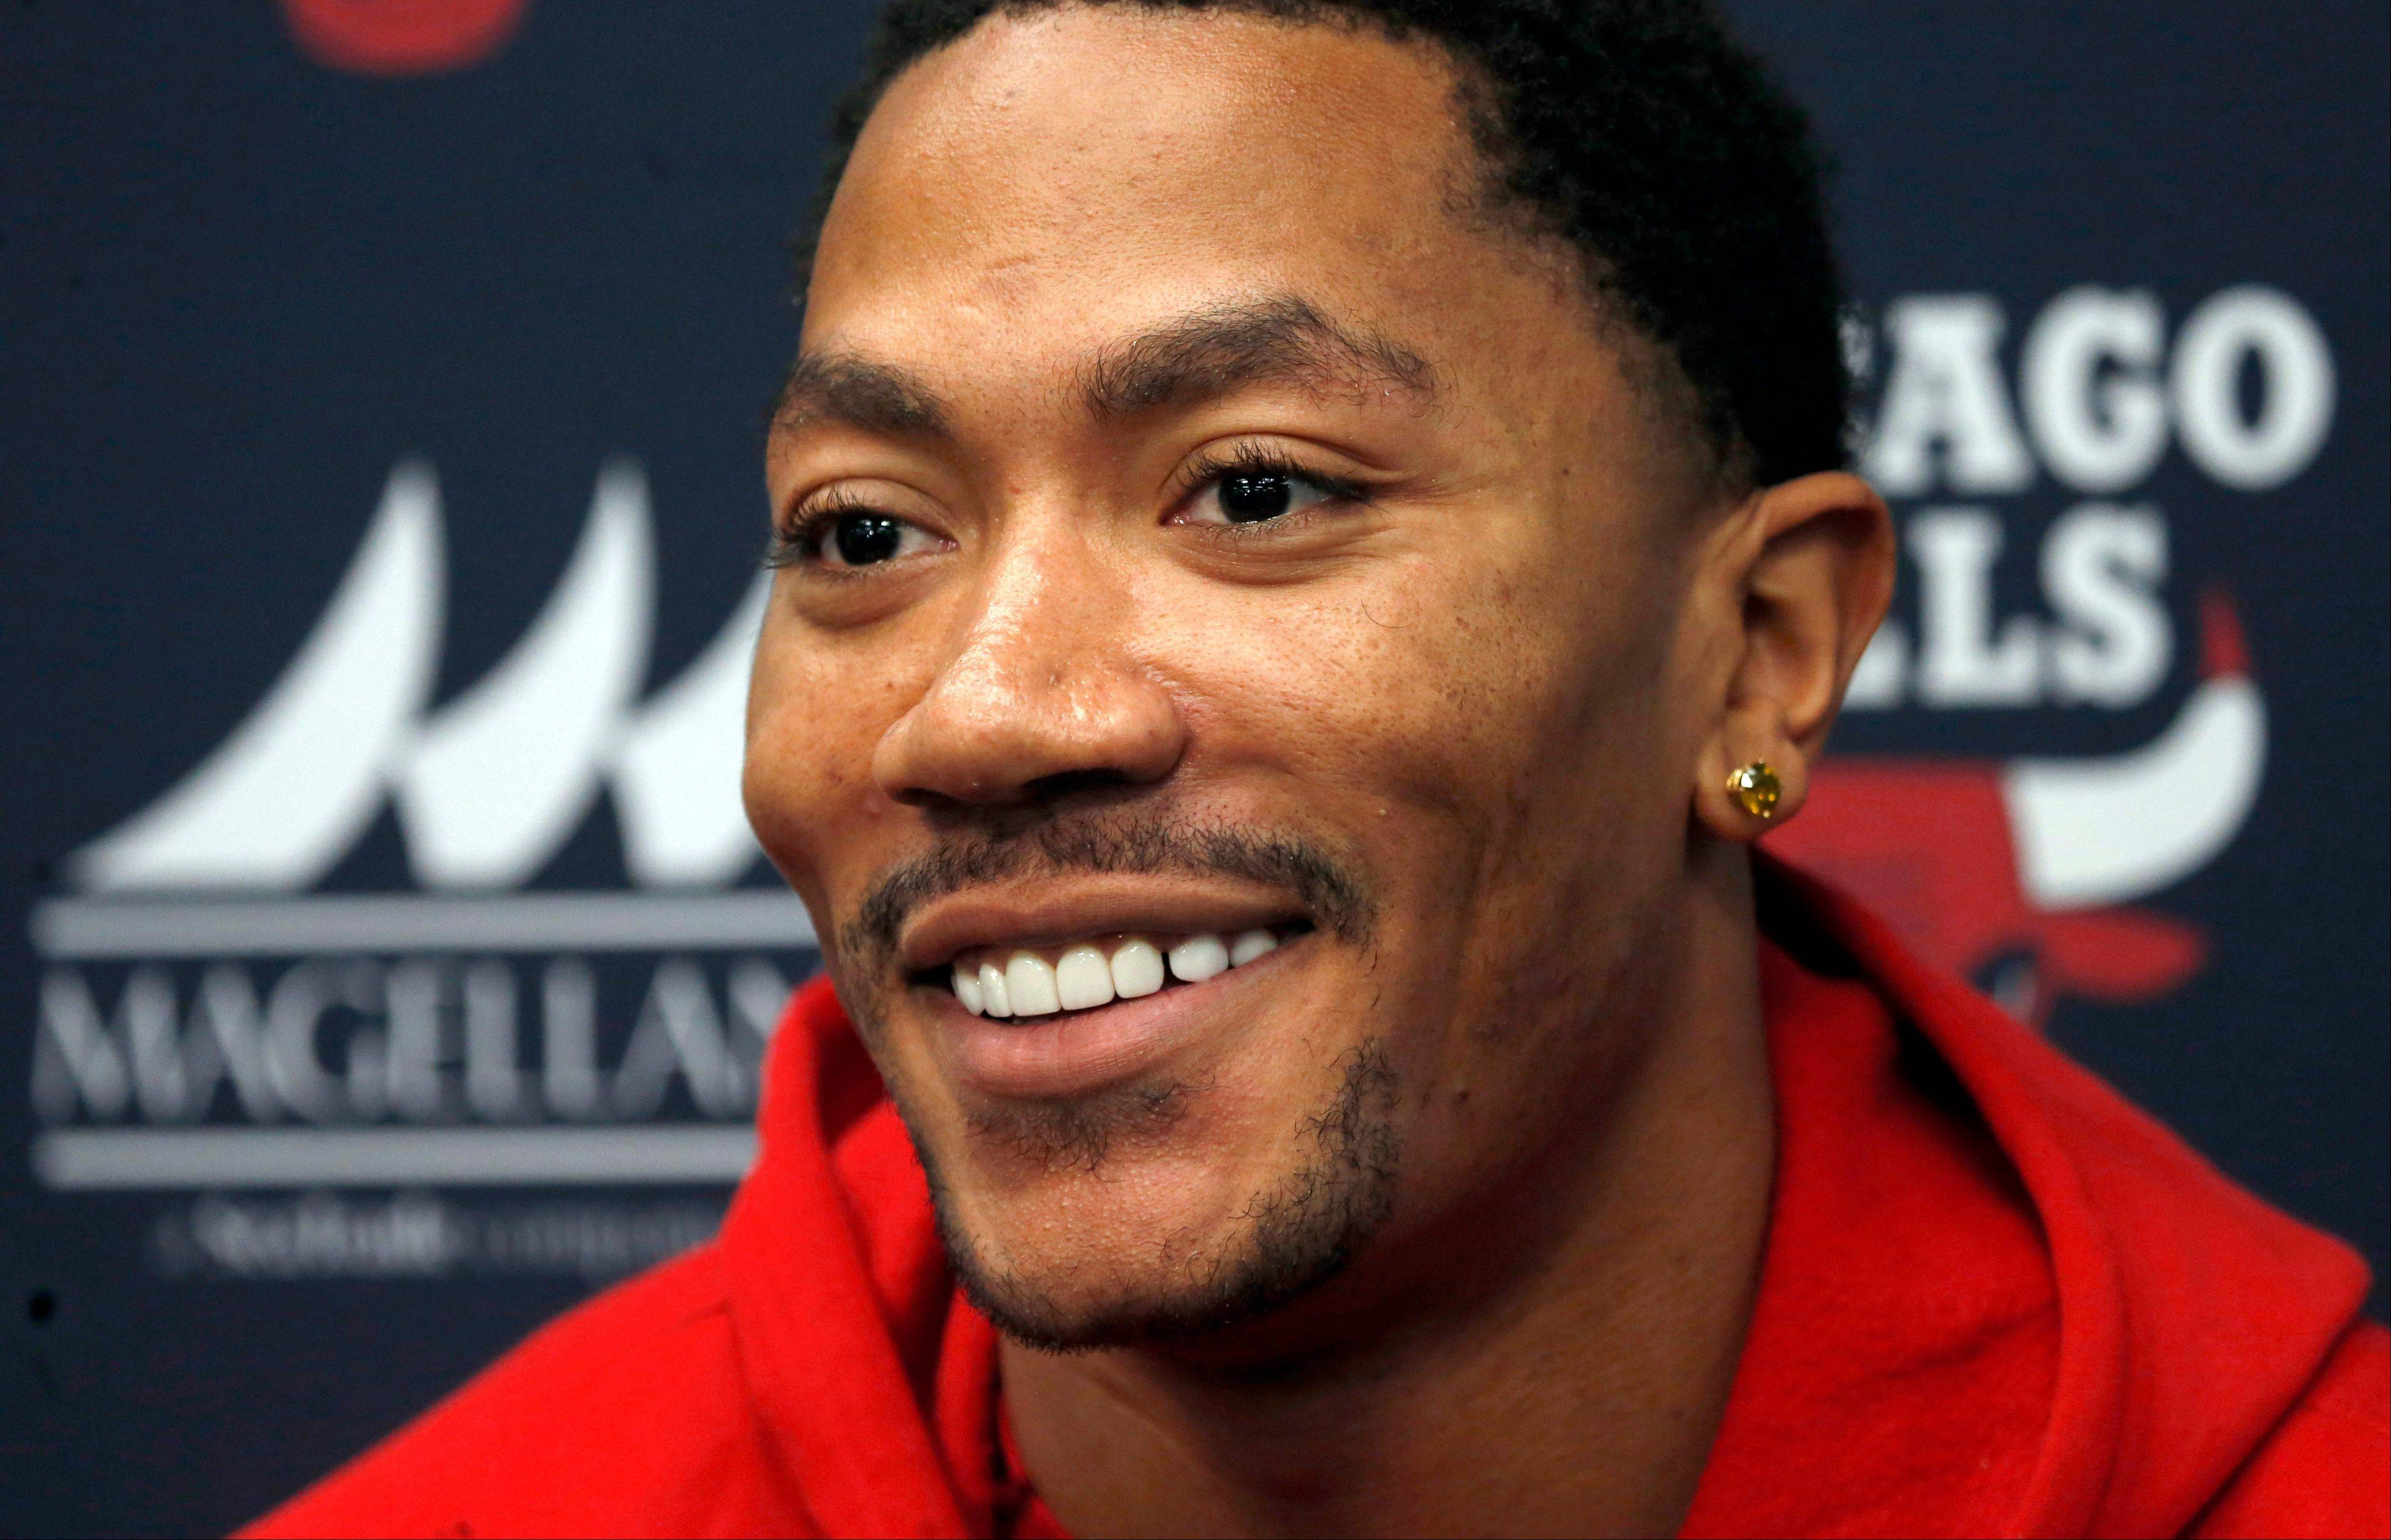 Chicago Bulls guard Derrick Rose, in his first public news conference since his latest knee injury, says he expects a full recovery and he wouldn't rule out returning this season.